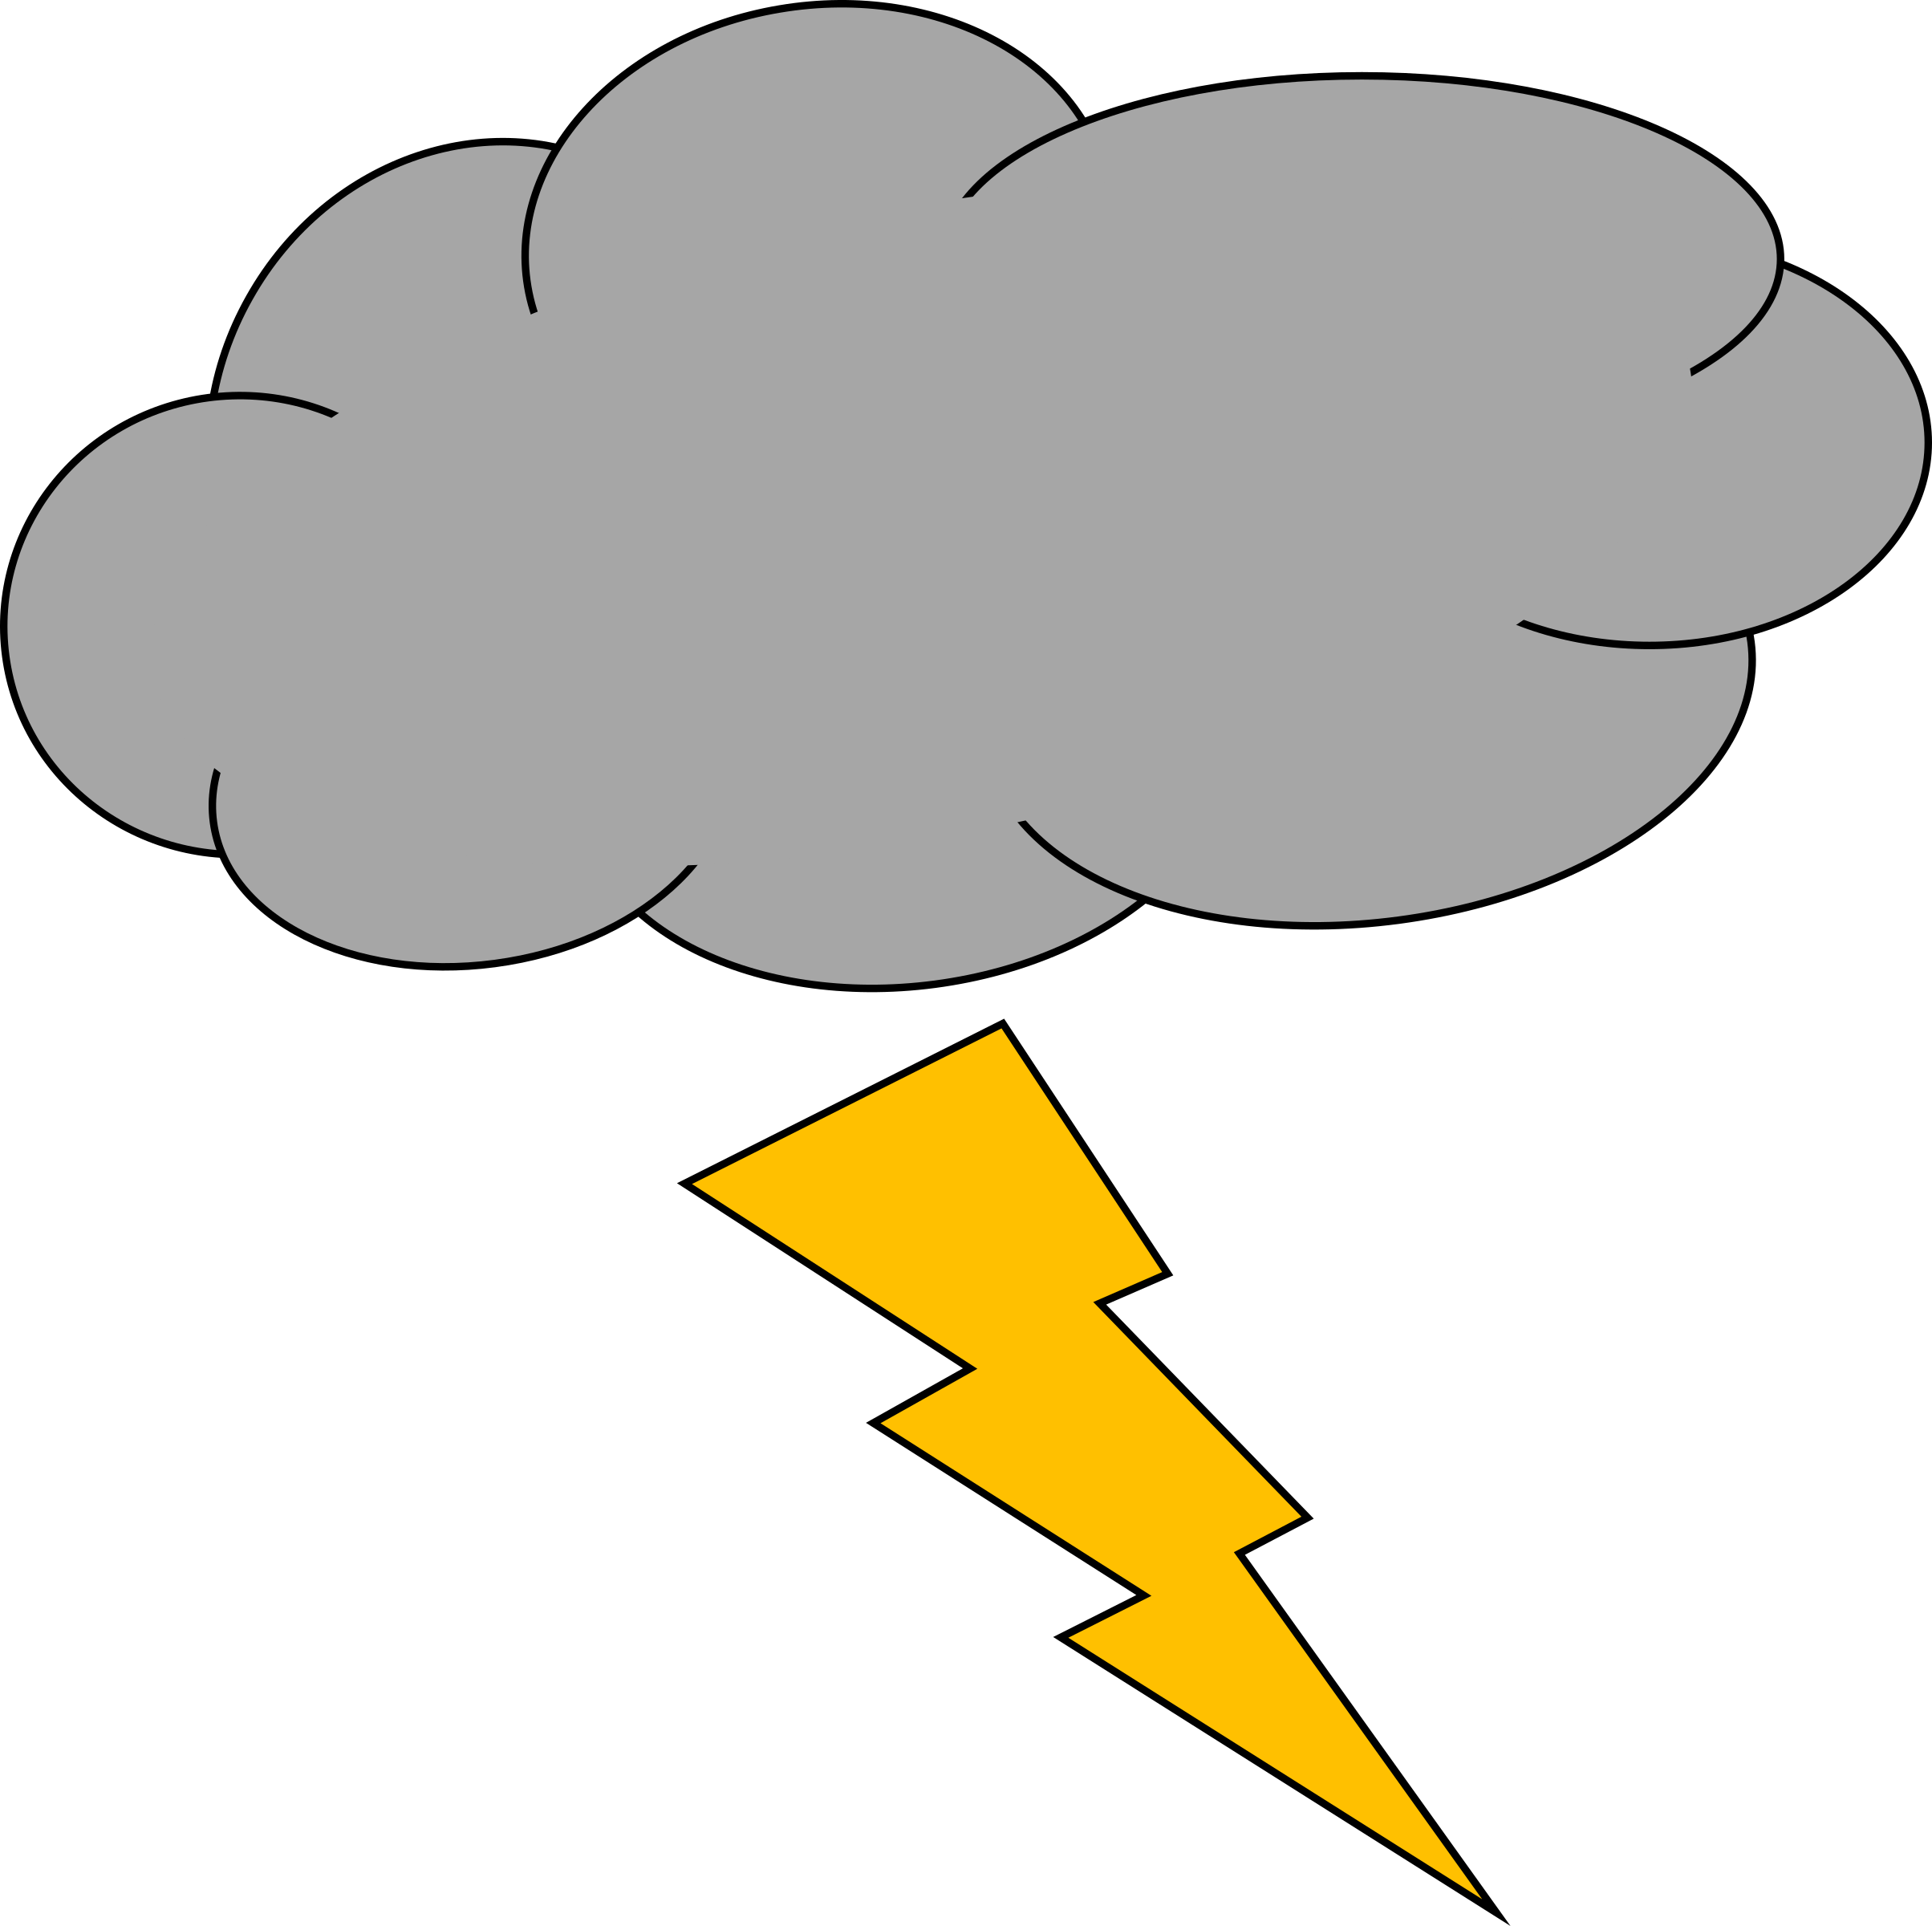 Lightening clipart sketch And Thunder and Clipart Thunder